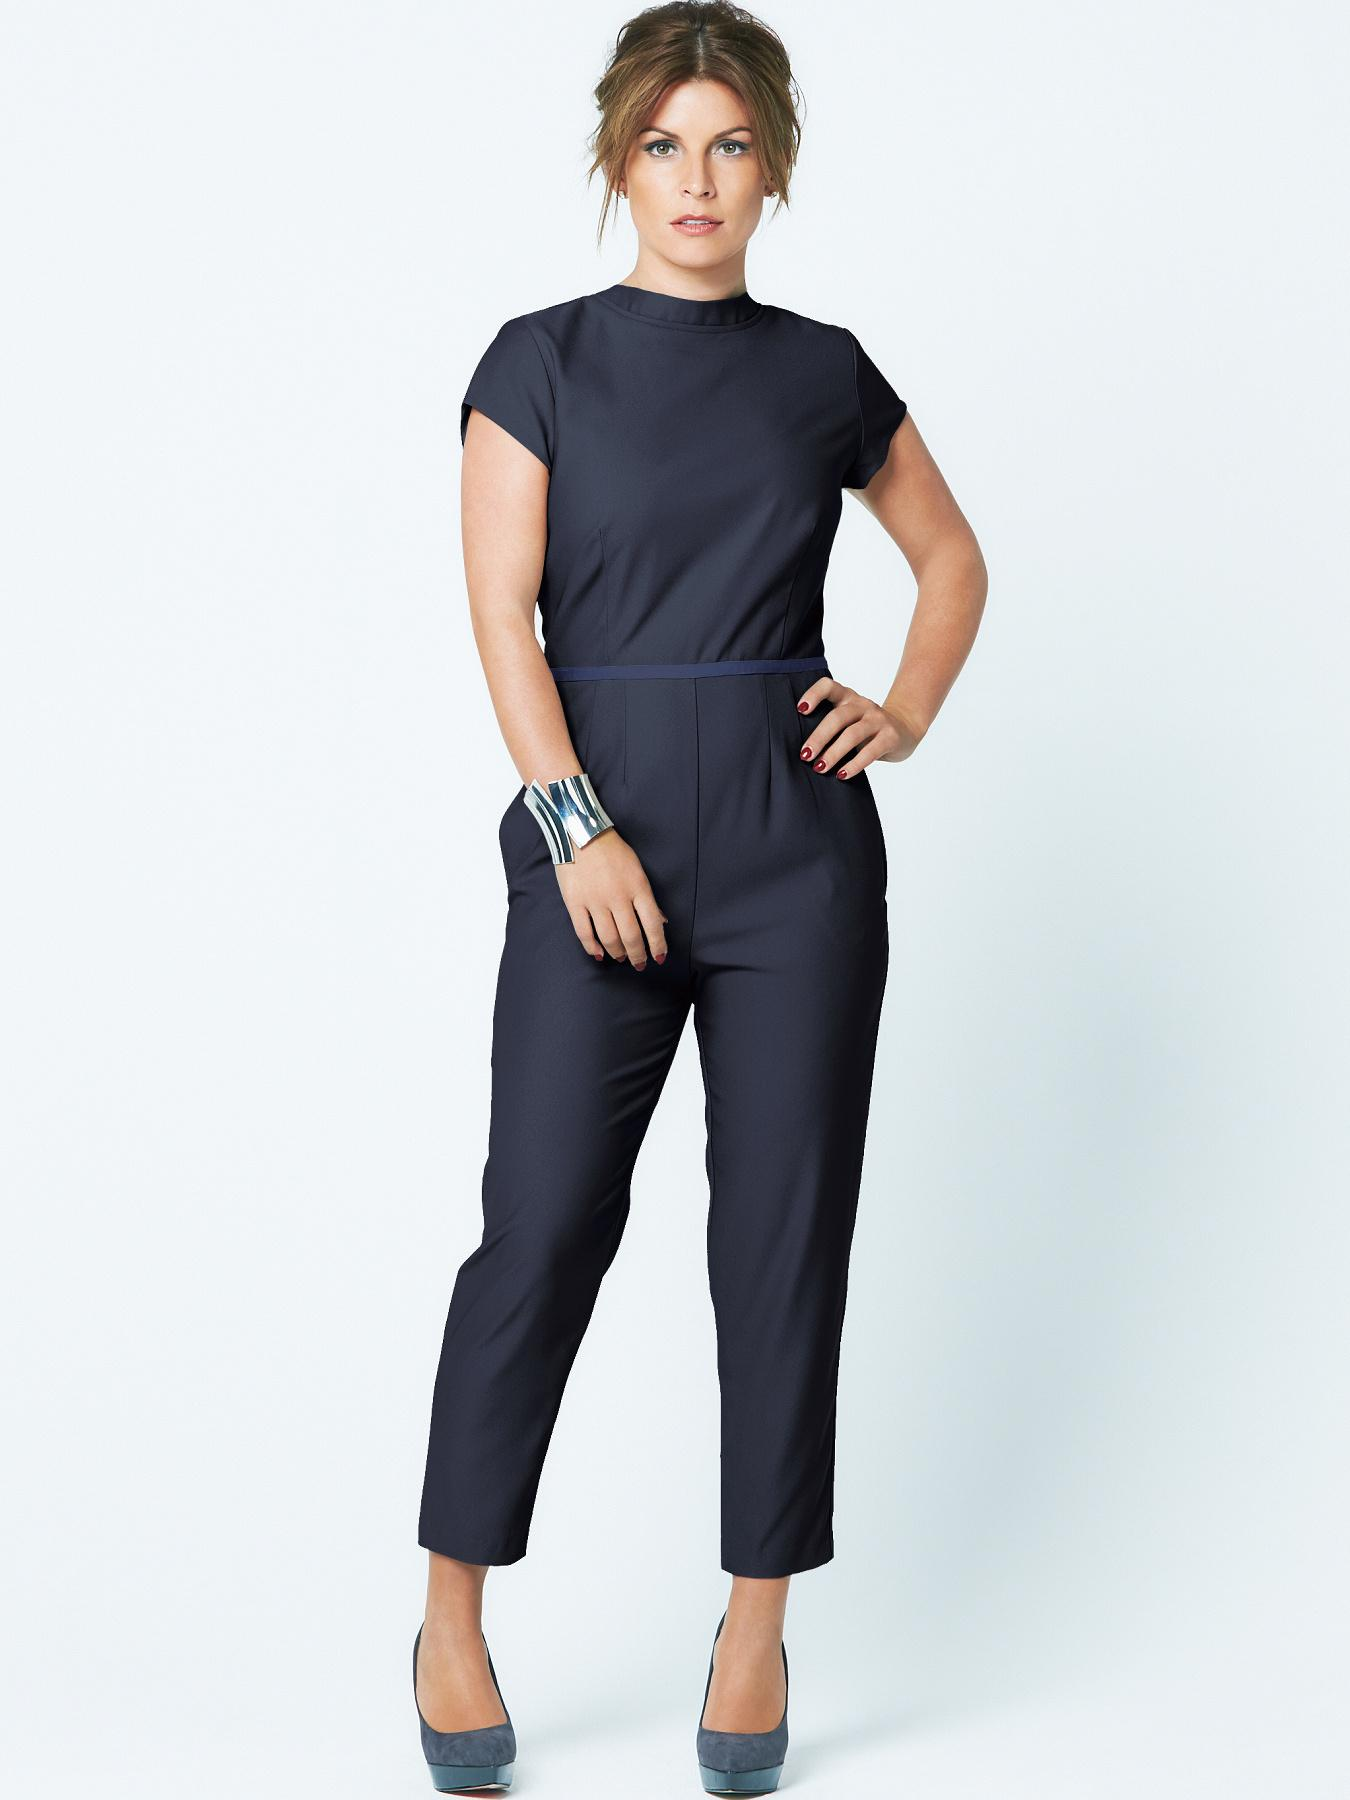 Coleen V Back Slim Leg Jumpsuit - Navy, Navy at Very, from Littlewoods